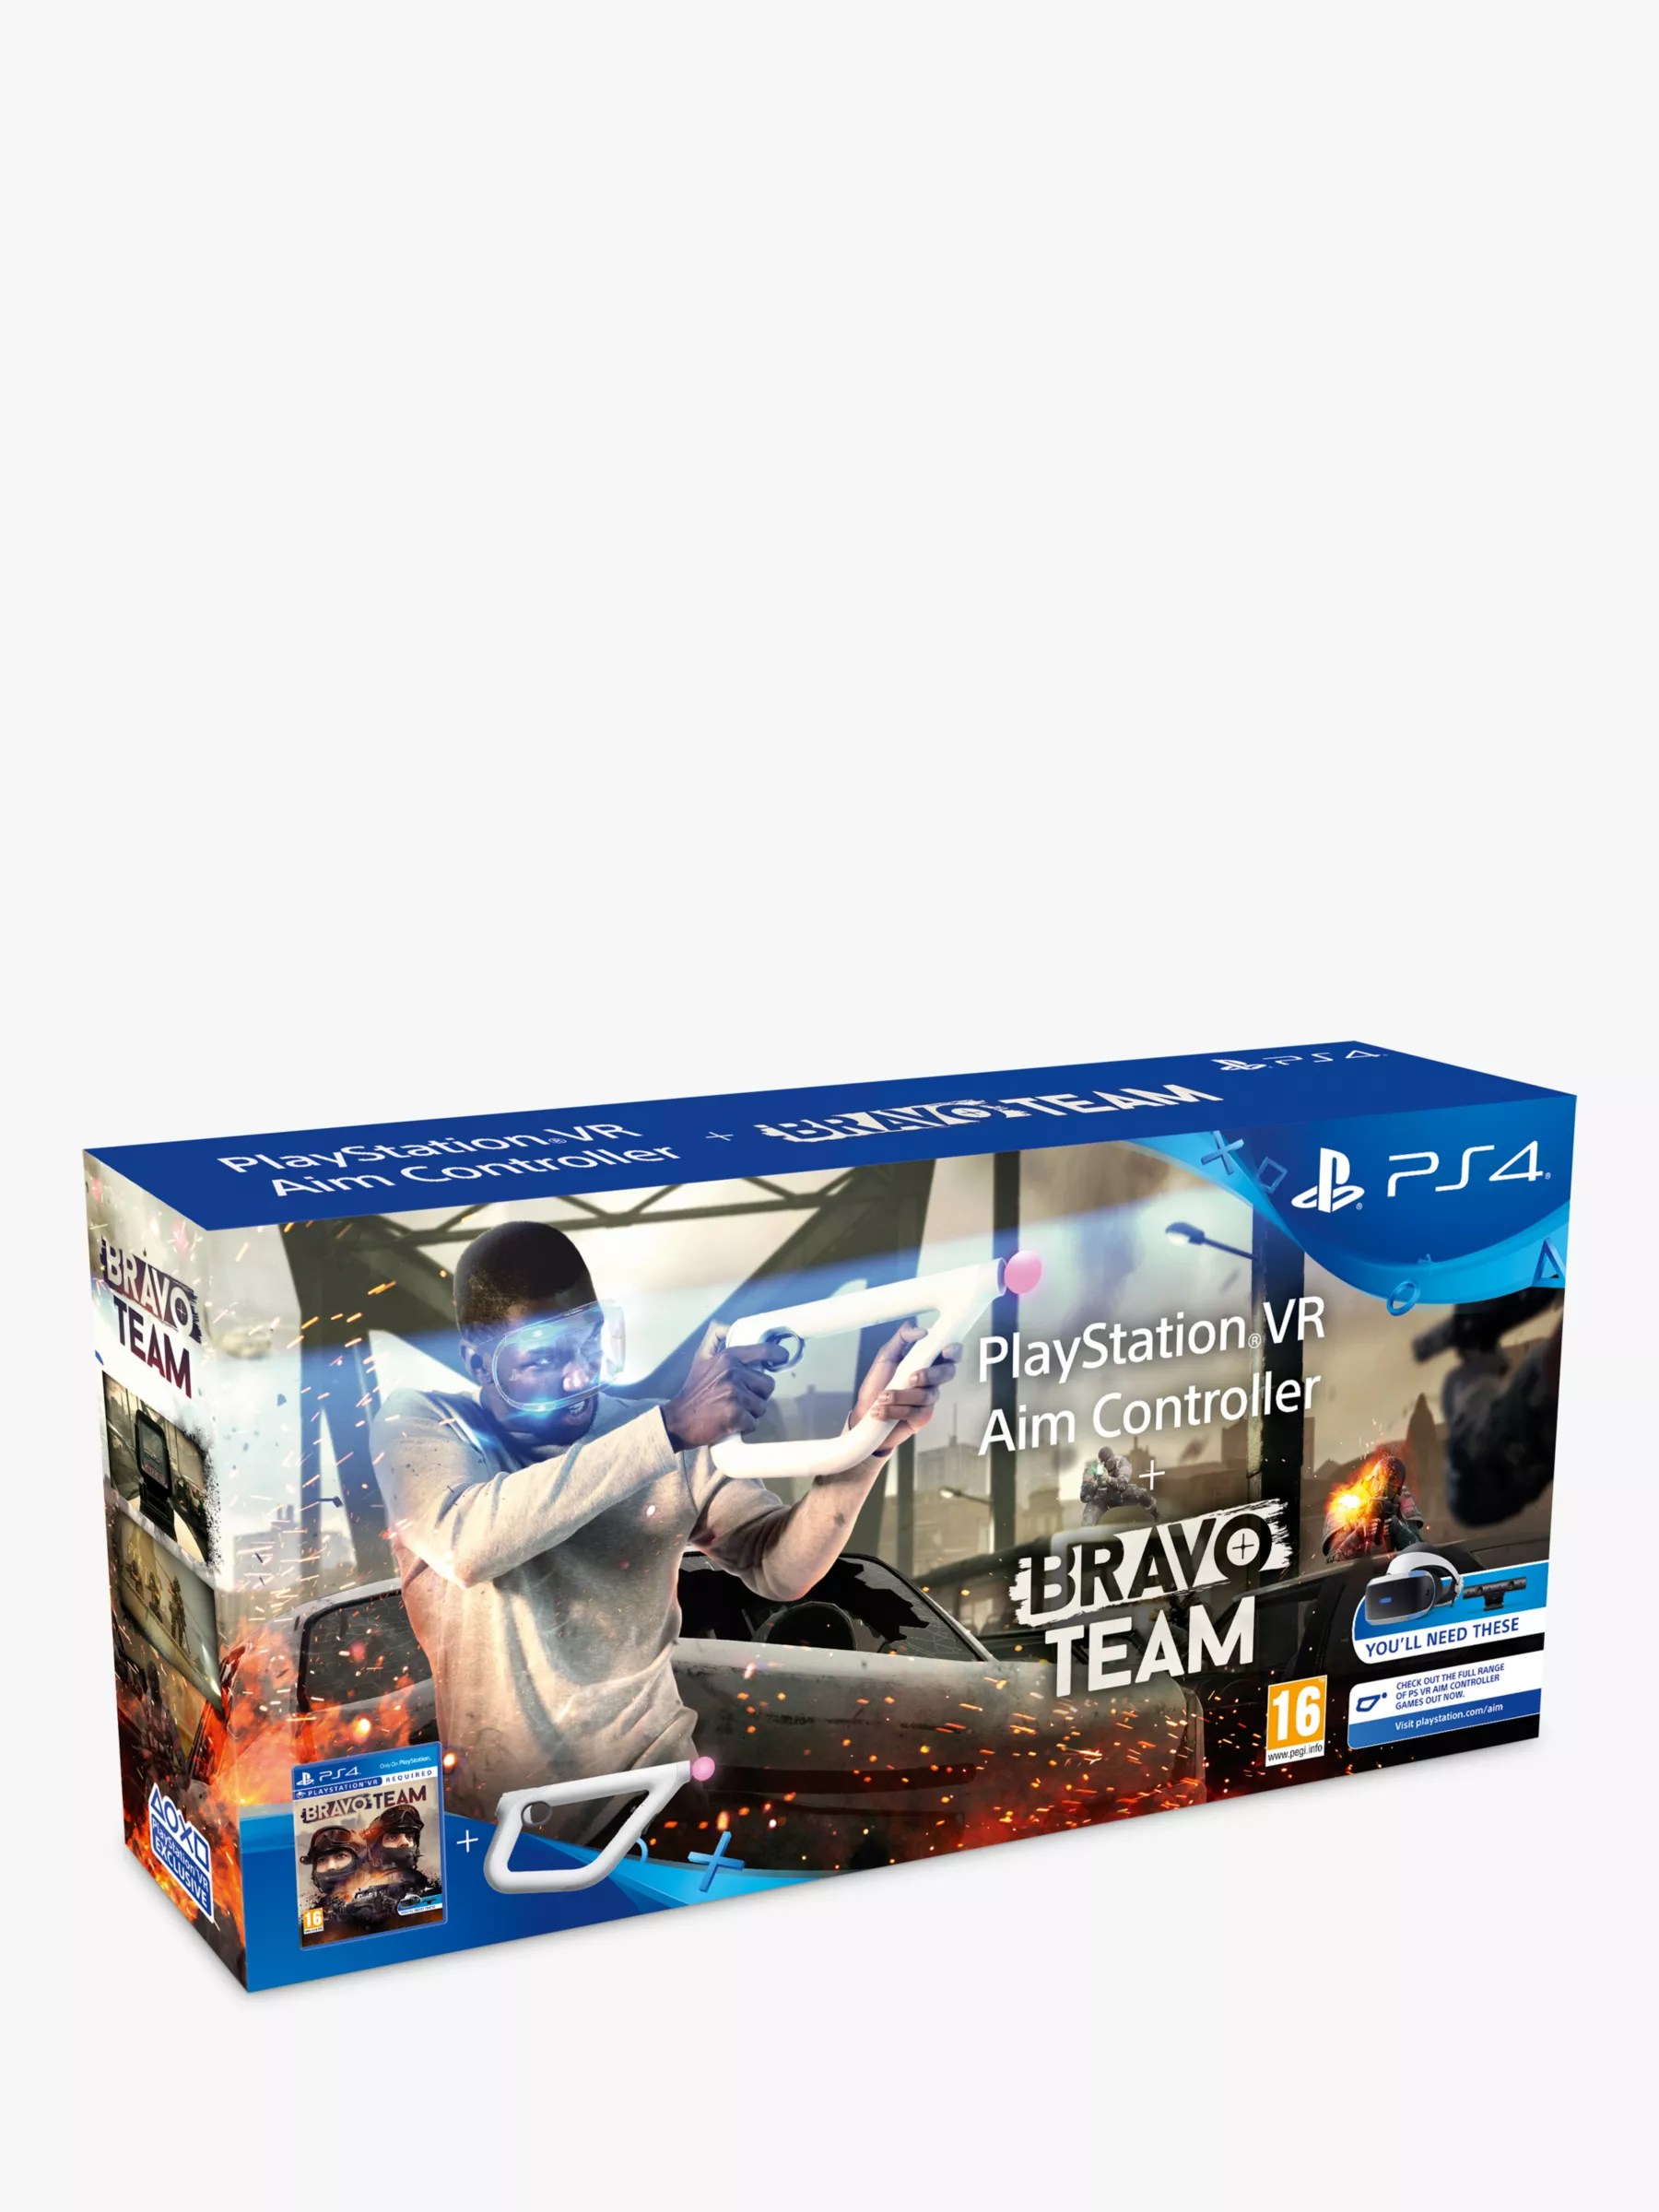 Bravo Team Ps Vr Game For Ps4 With Playstation Vr Aim